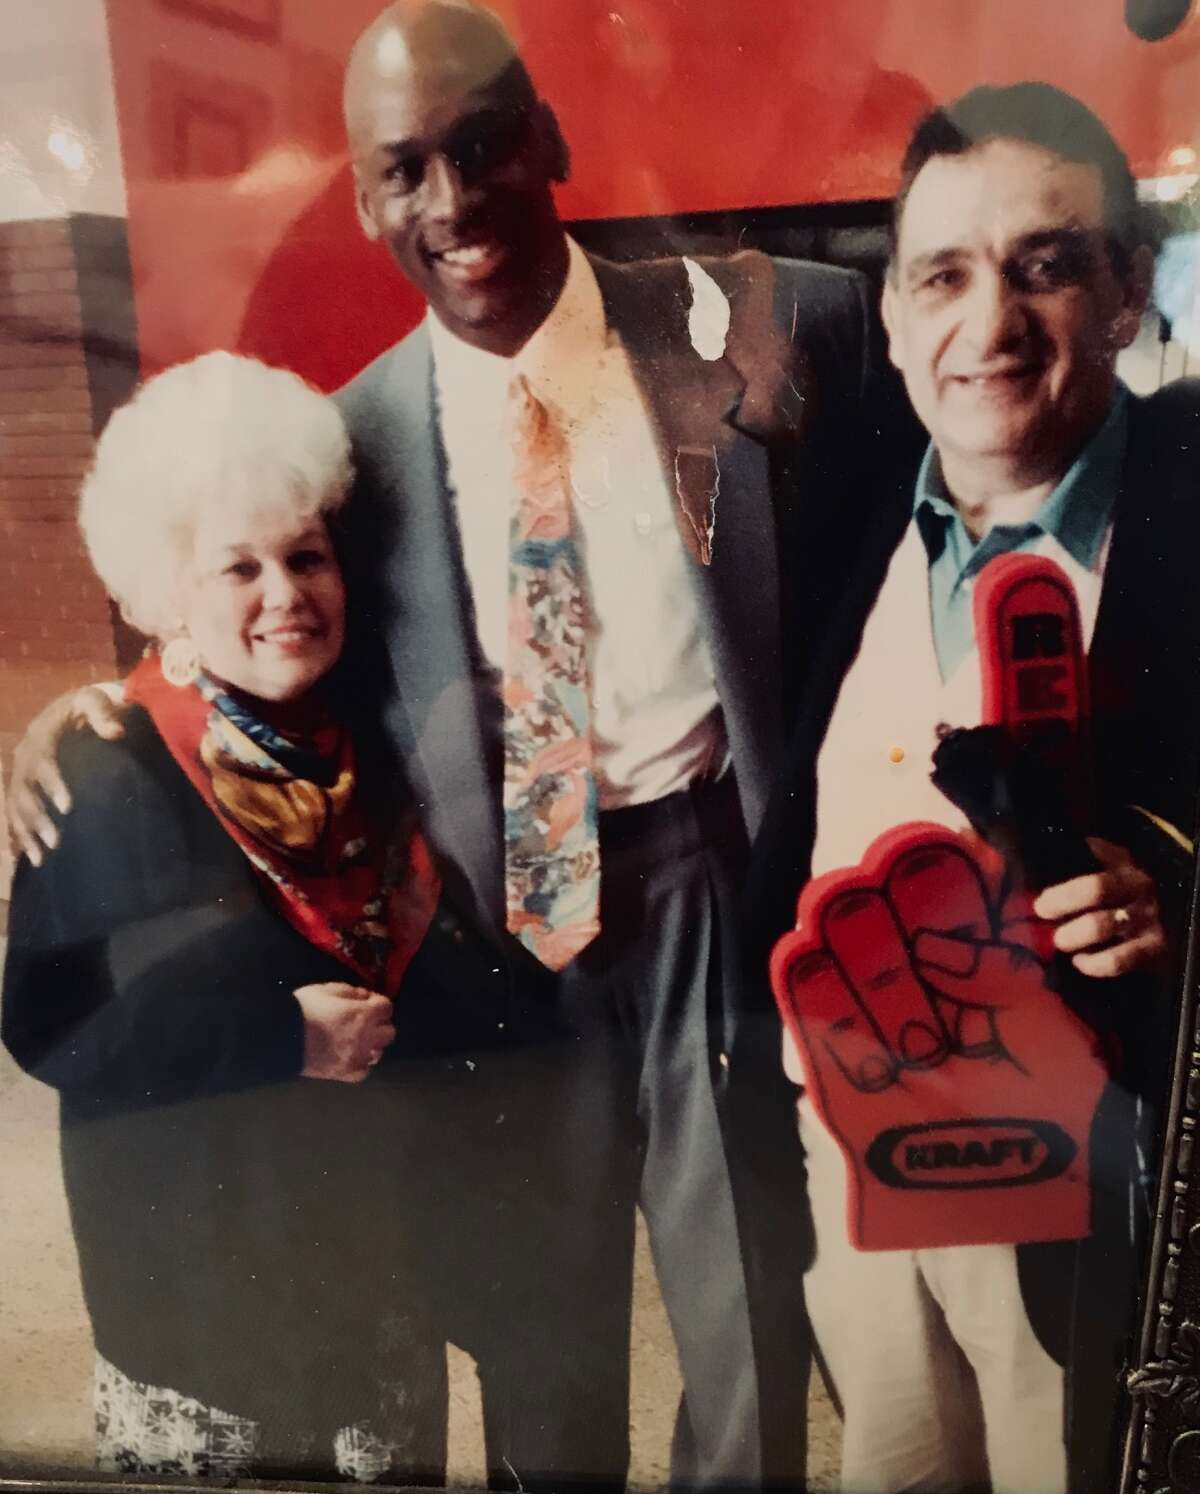 Michael Jordan celebrated after a Chicago Bulls game with John and Marlene Elacqua, whom he playfully called